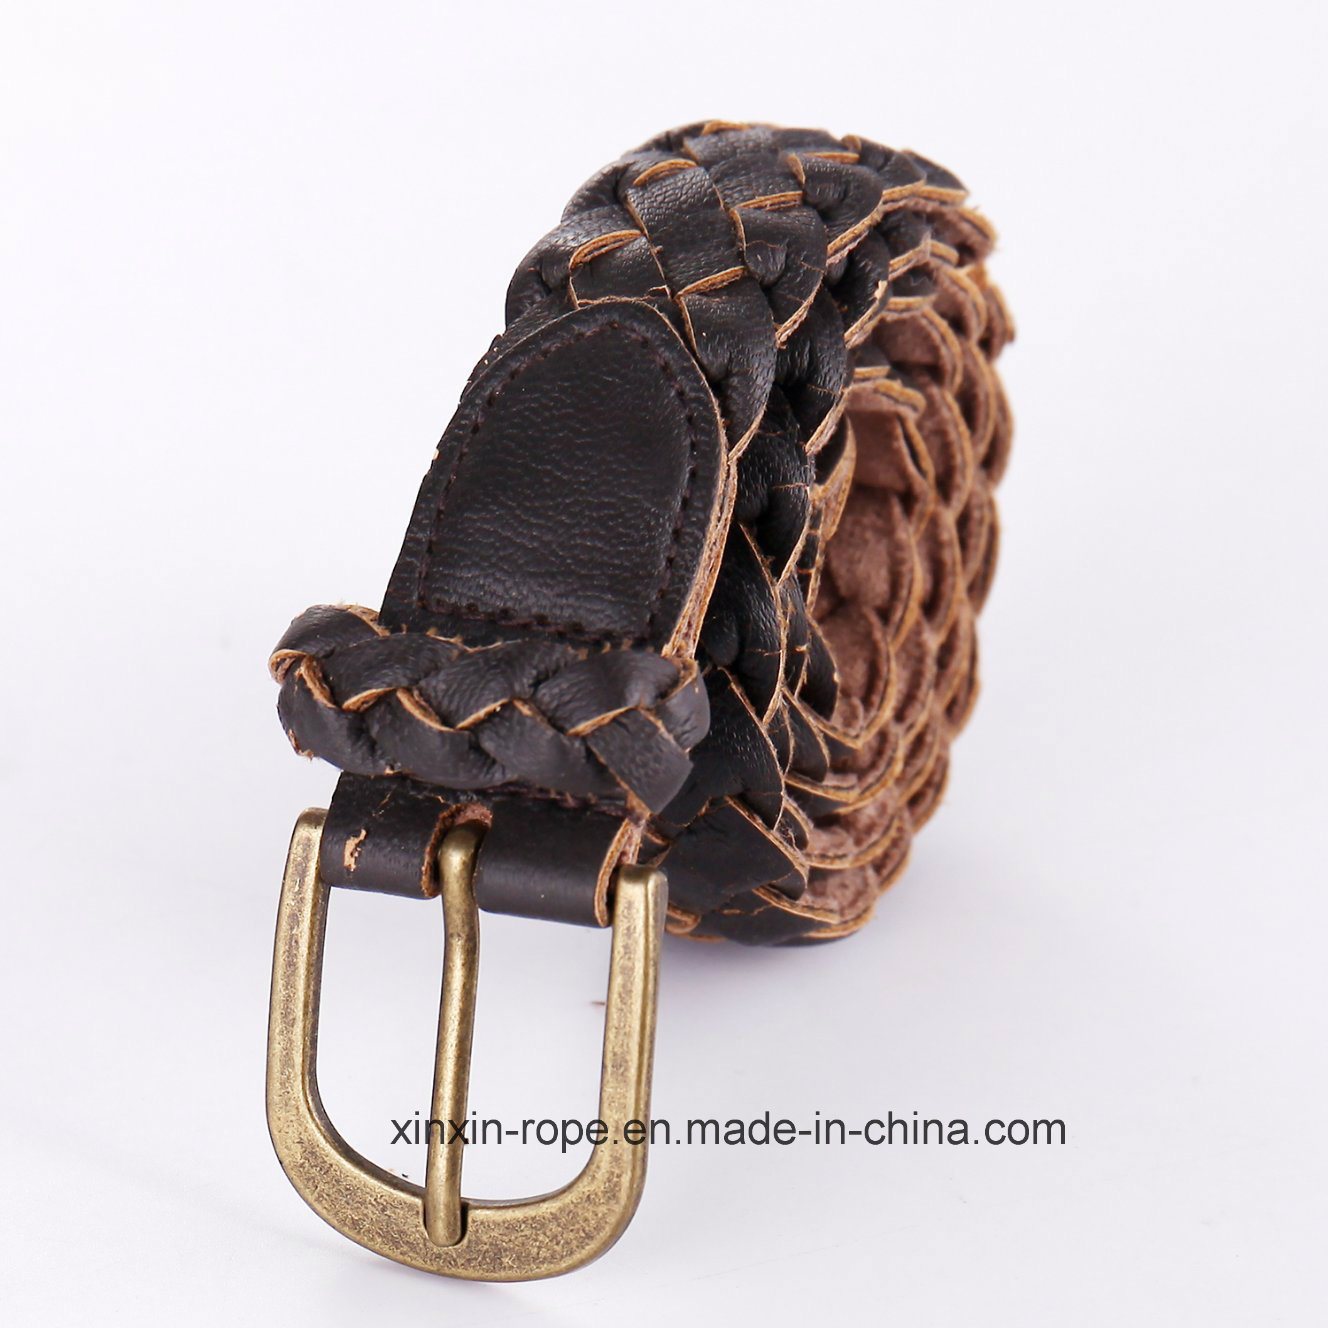 Special Customize Woven PU Leather Pin Buckle Belt for Gift